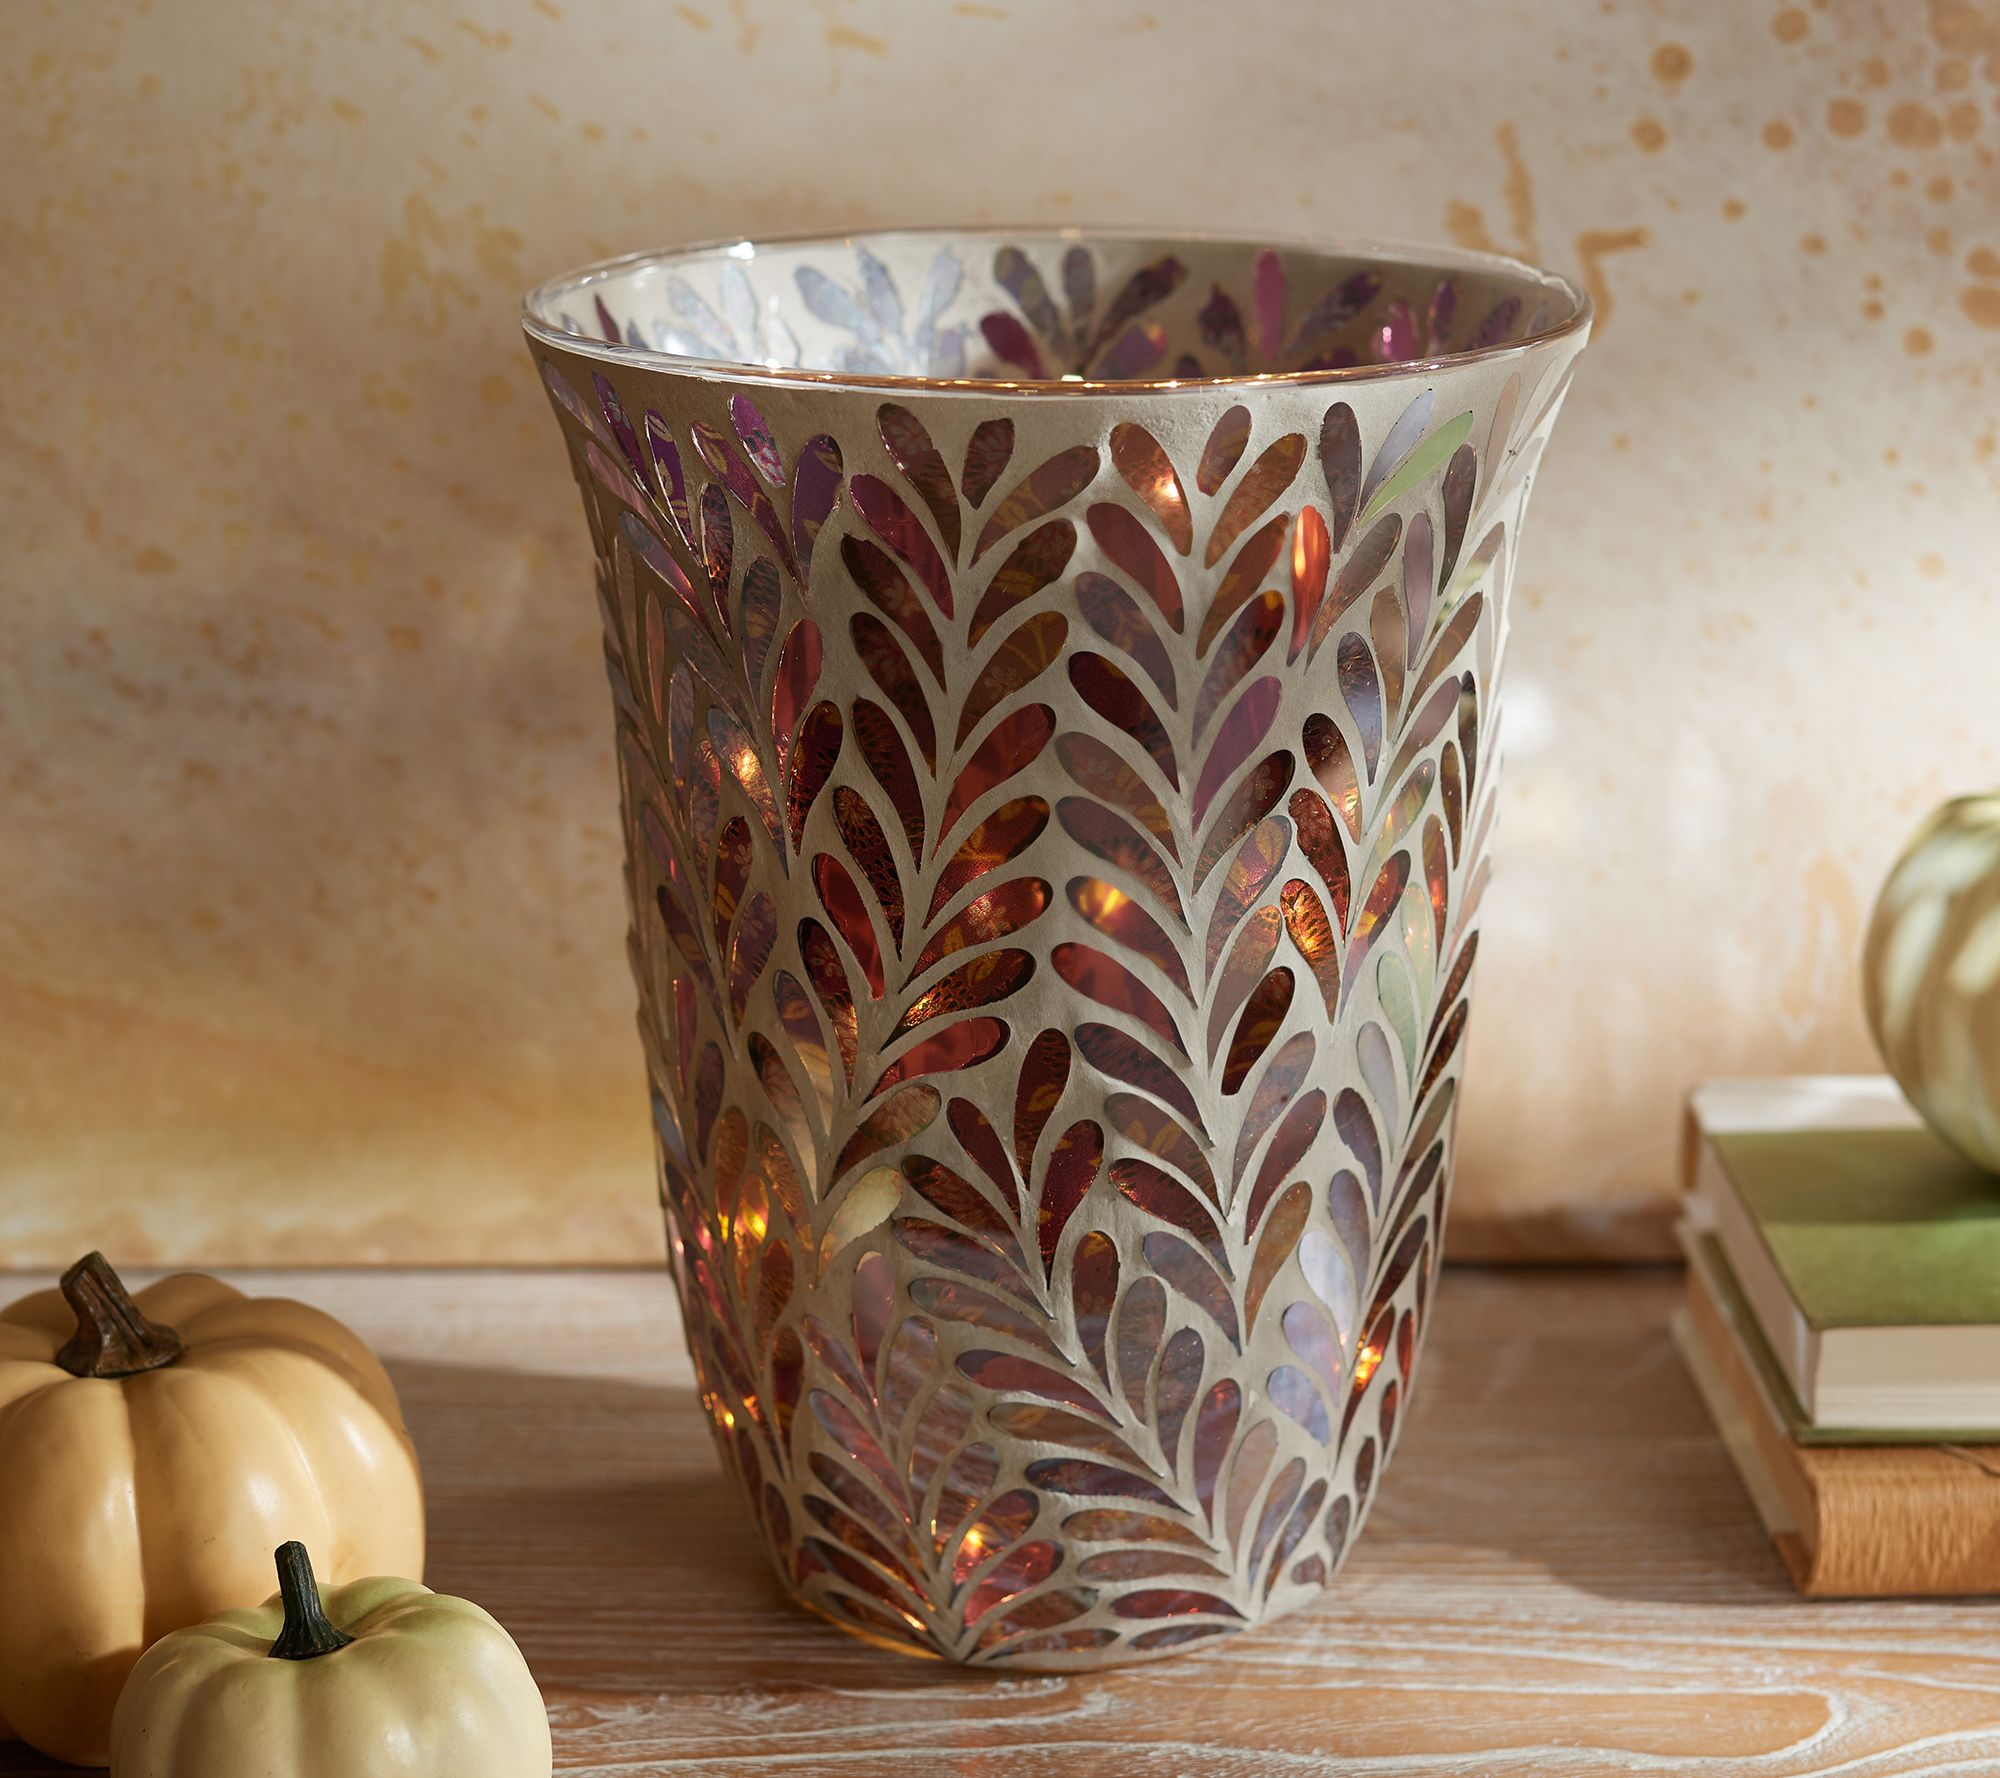 Curved vase with glowing mosaic leaf design